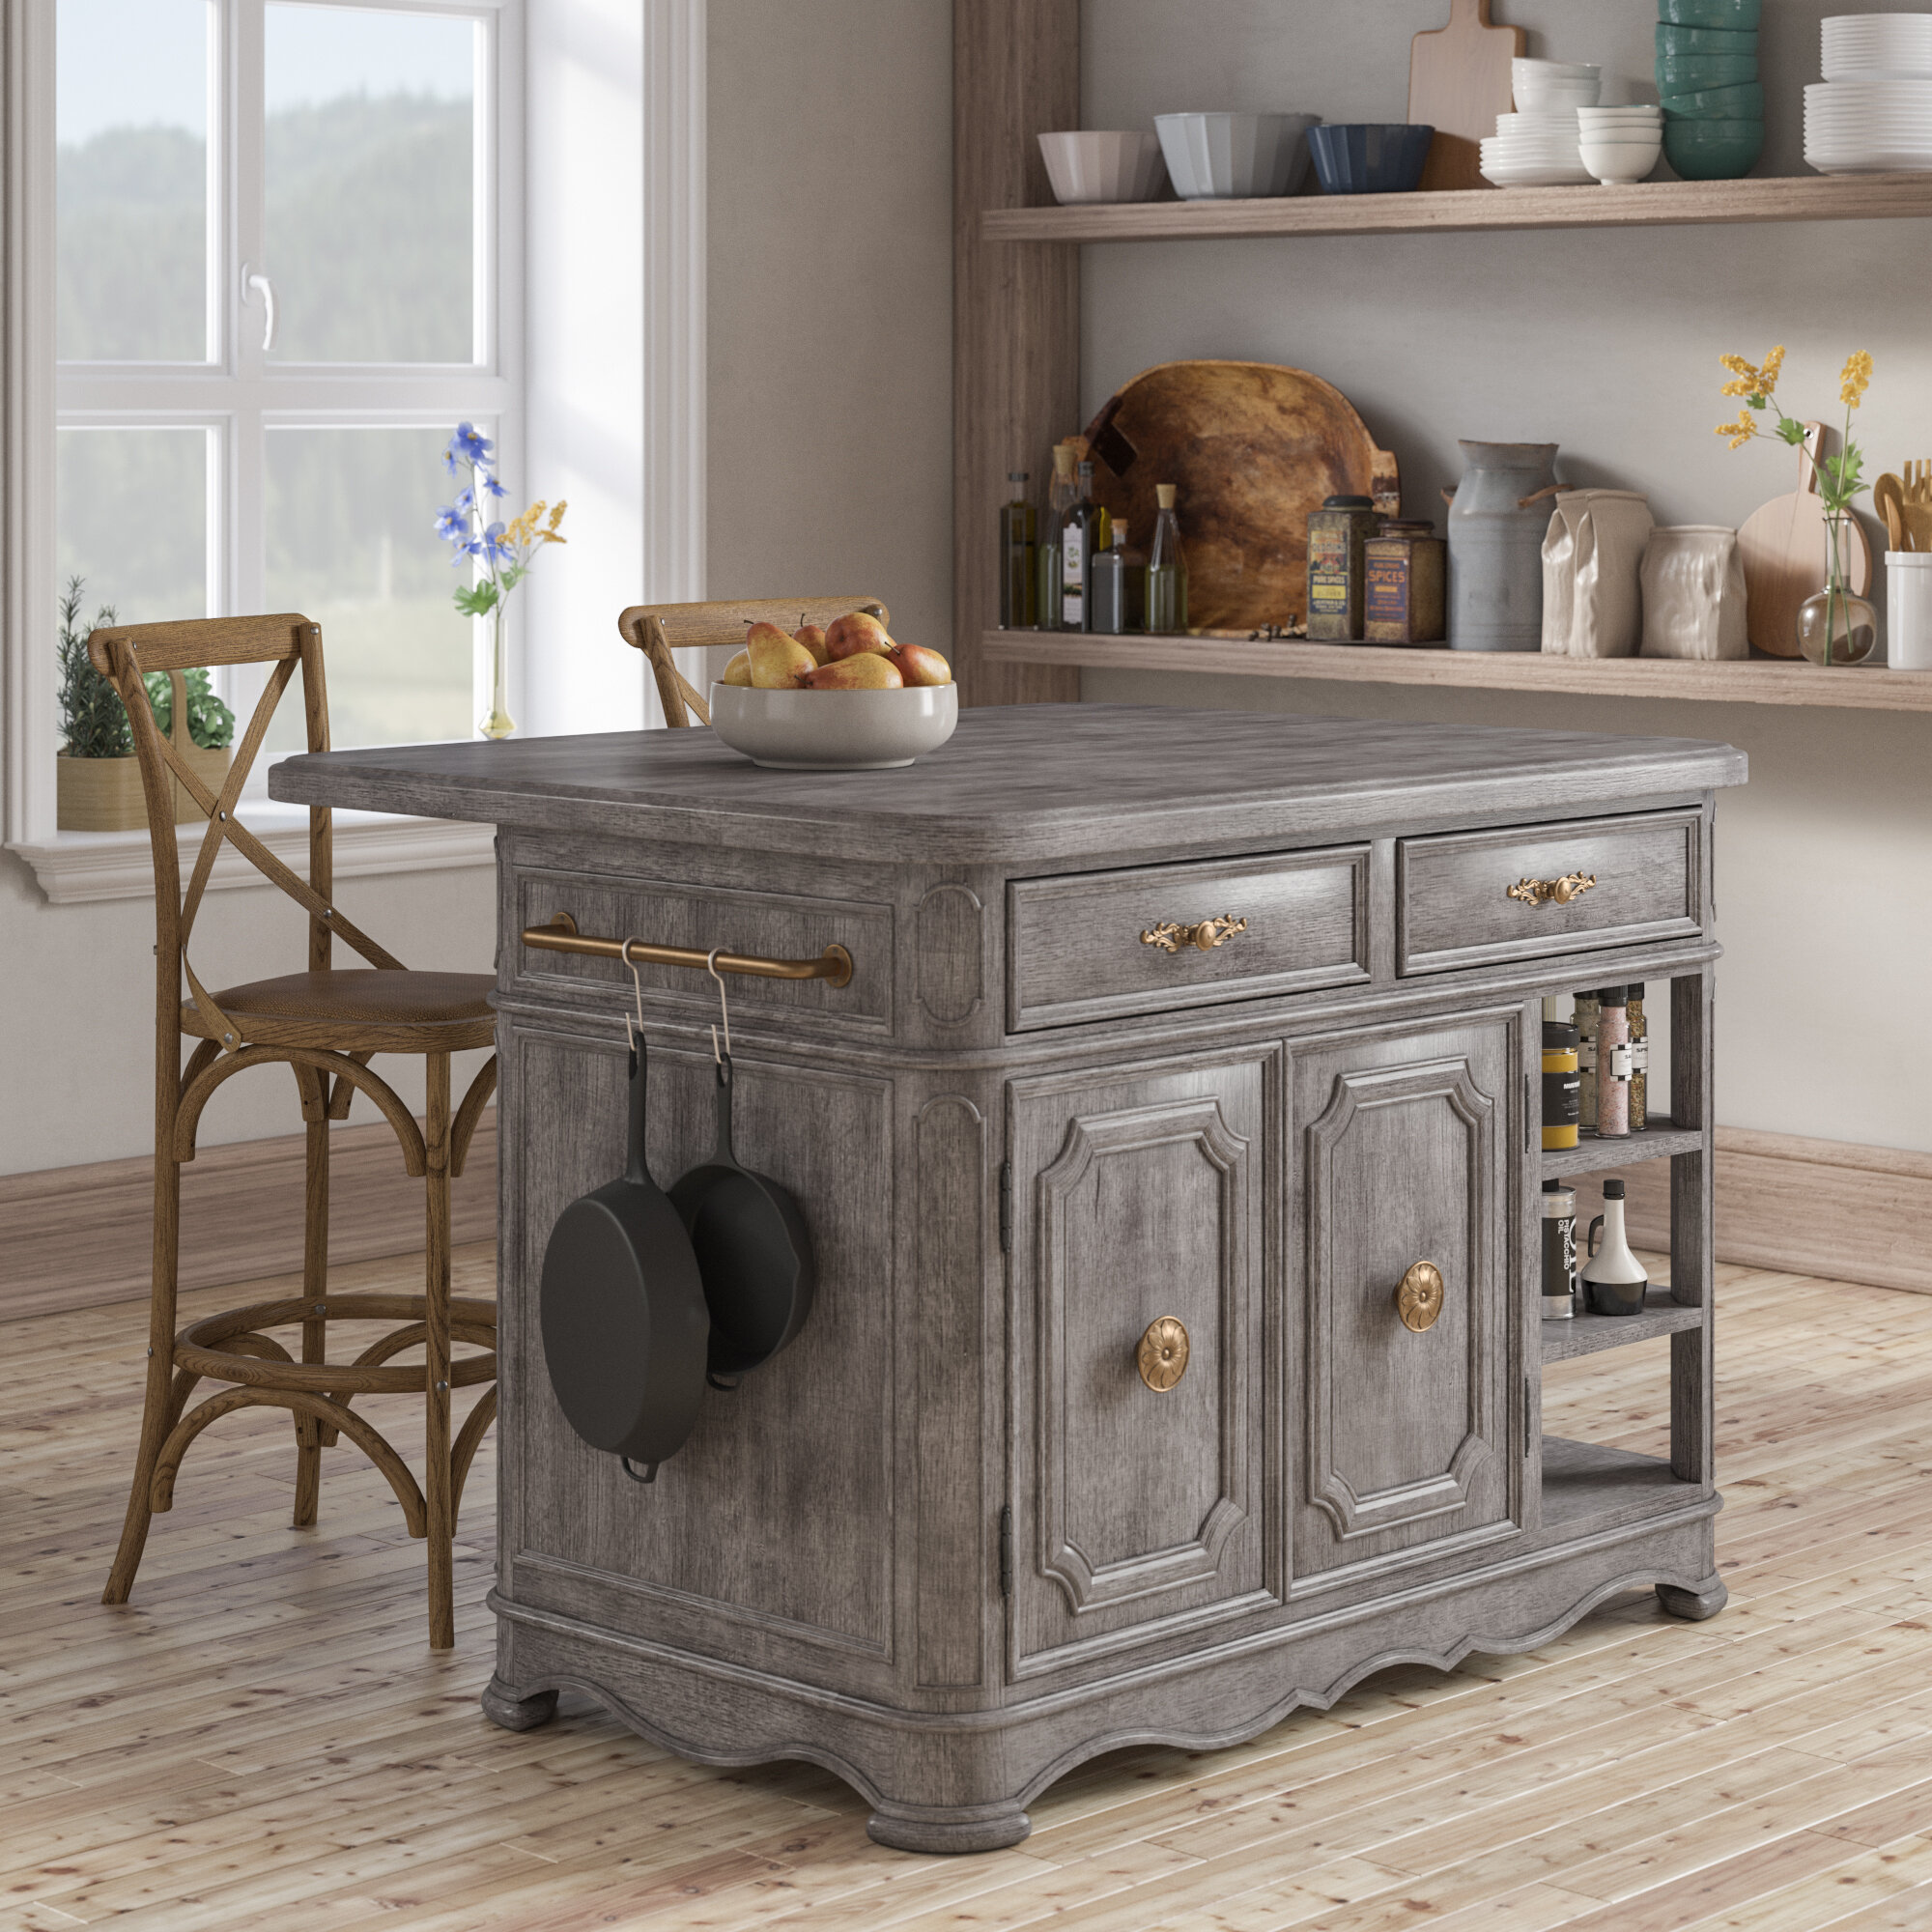 French Country Kitchen Islands Carts Free Shipping Over 35 Wayfair